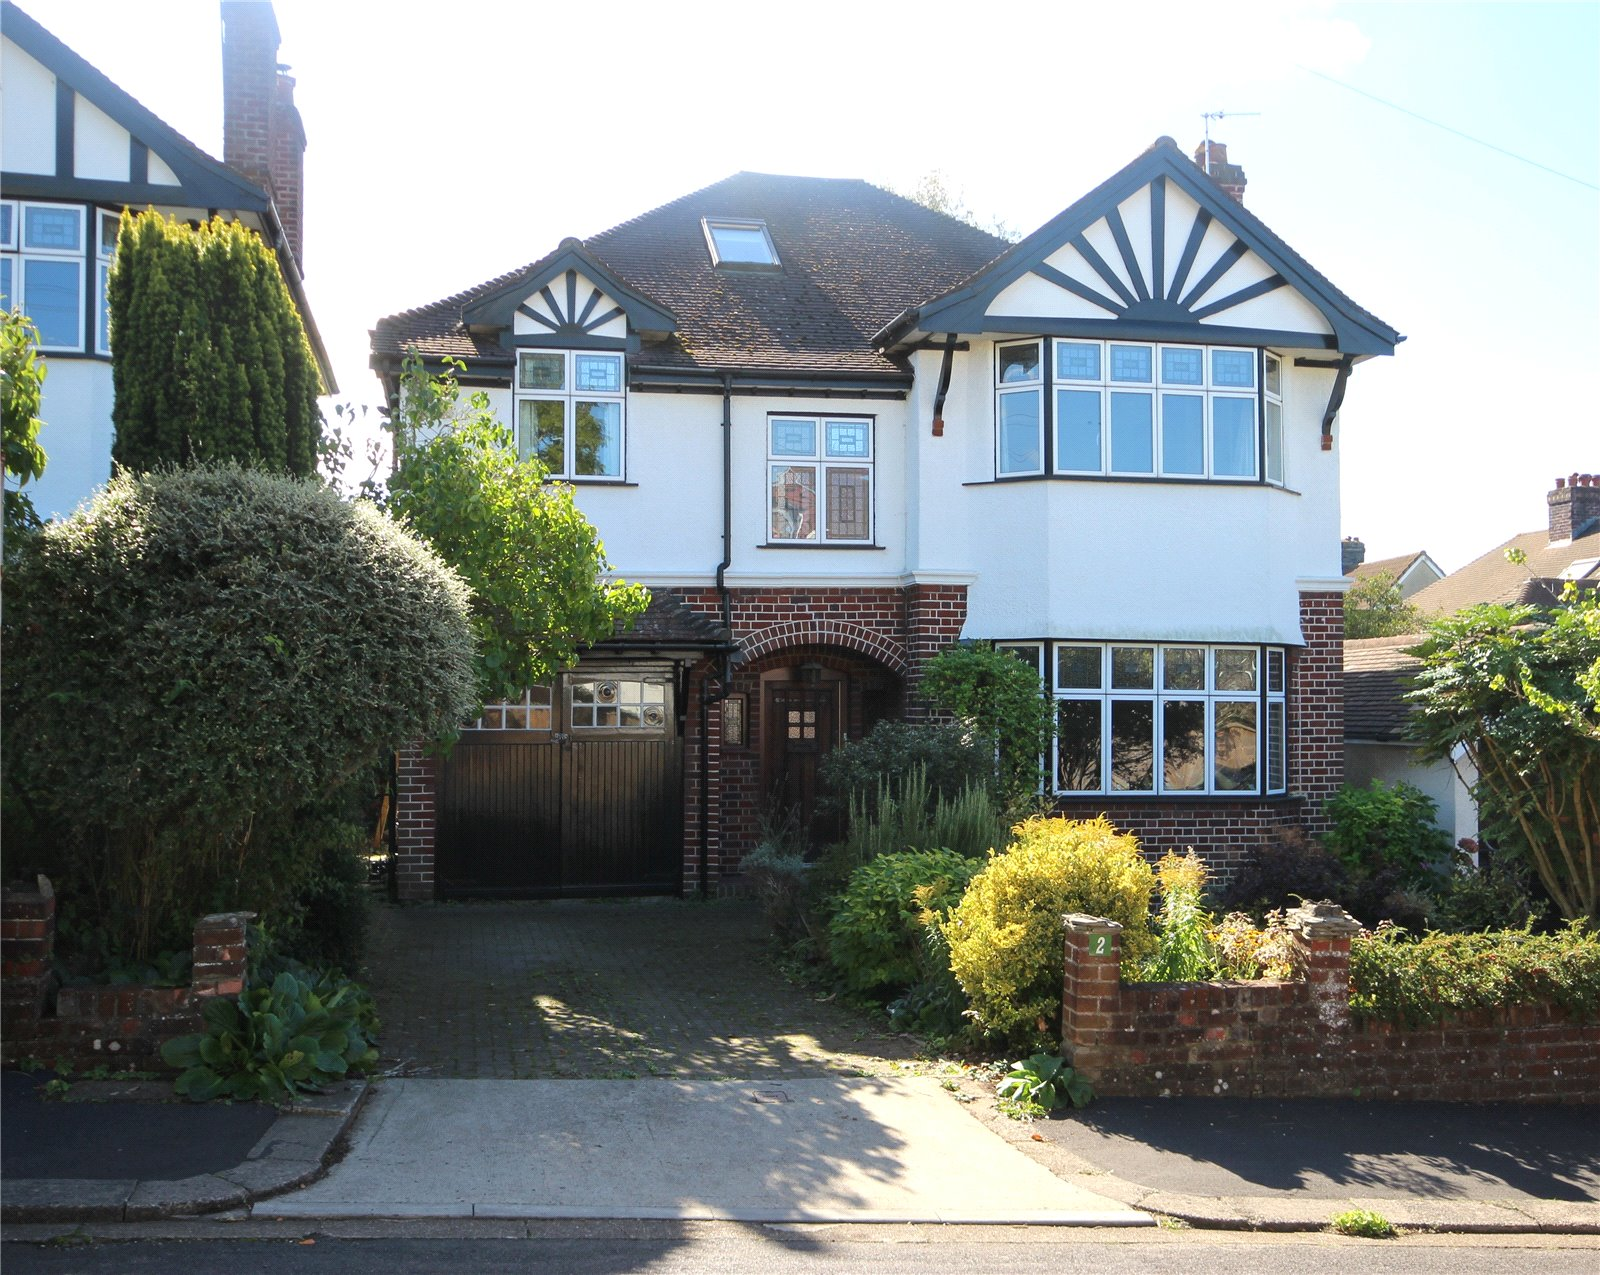 Cj Hole Henleaze 4 Bedroom House For Sale In Birbeck Road